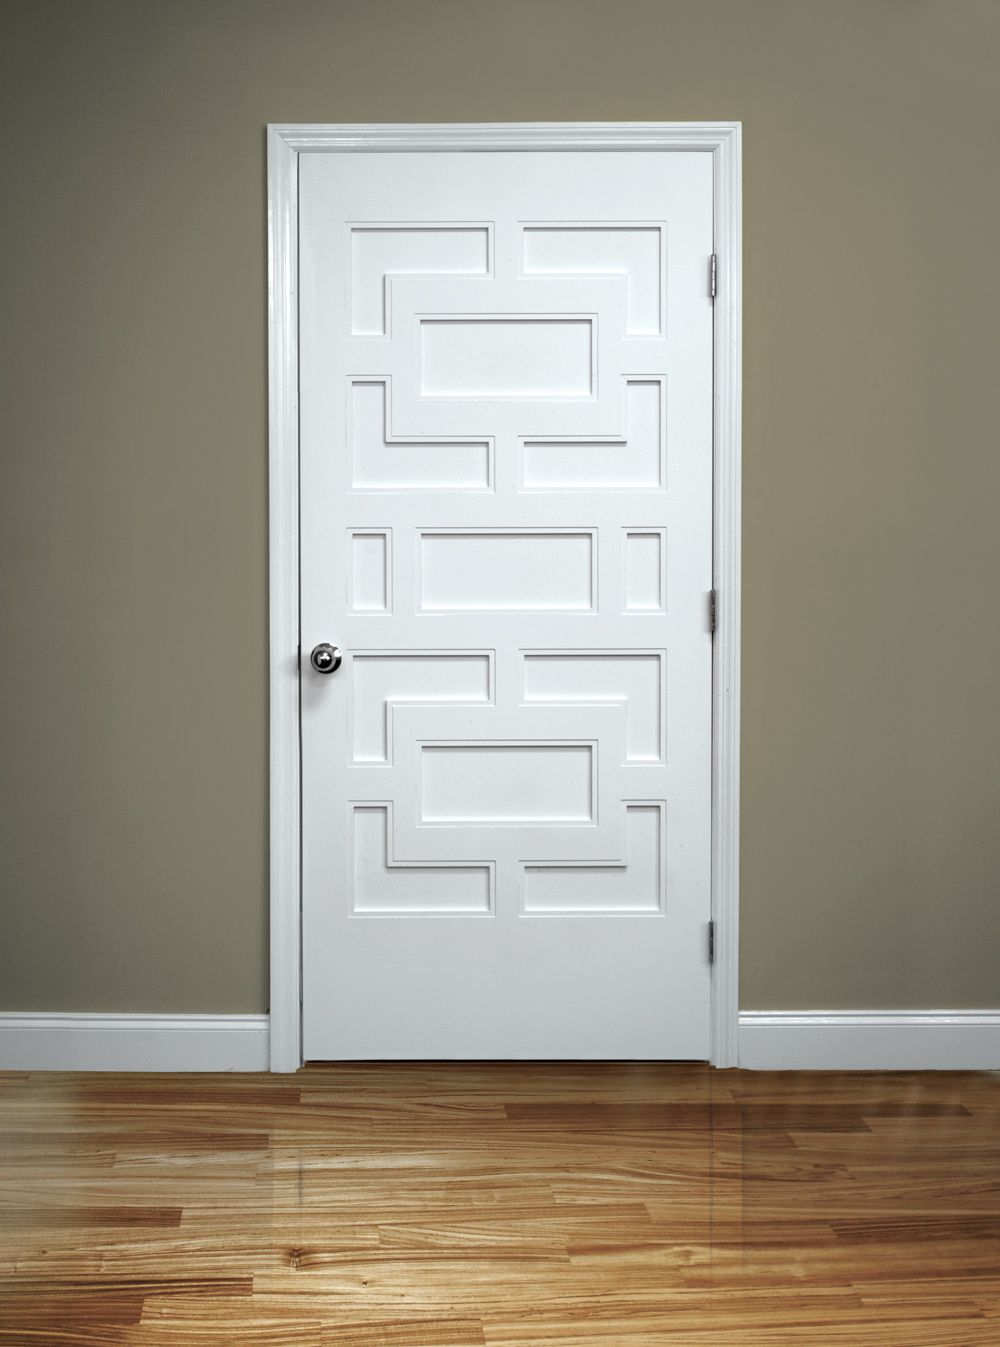 Elegant white masonite interior door